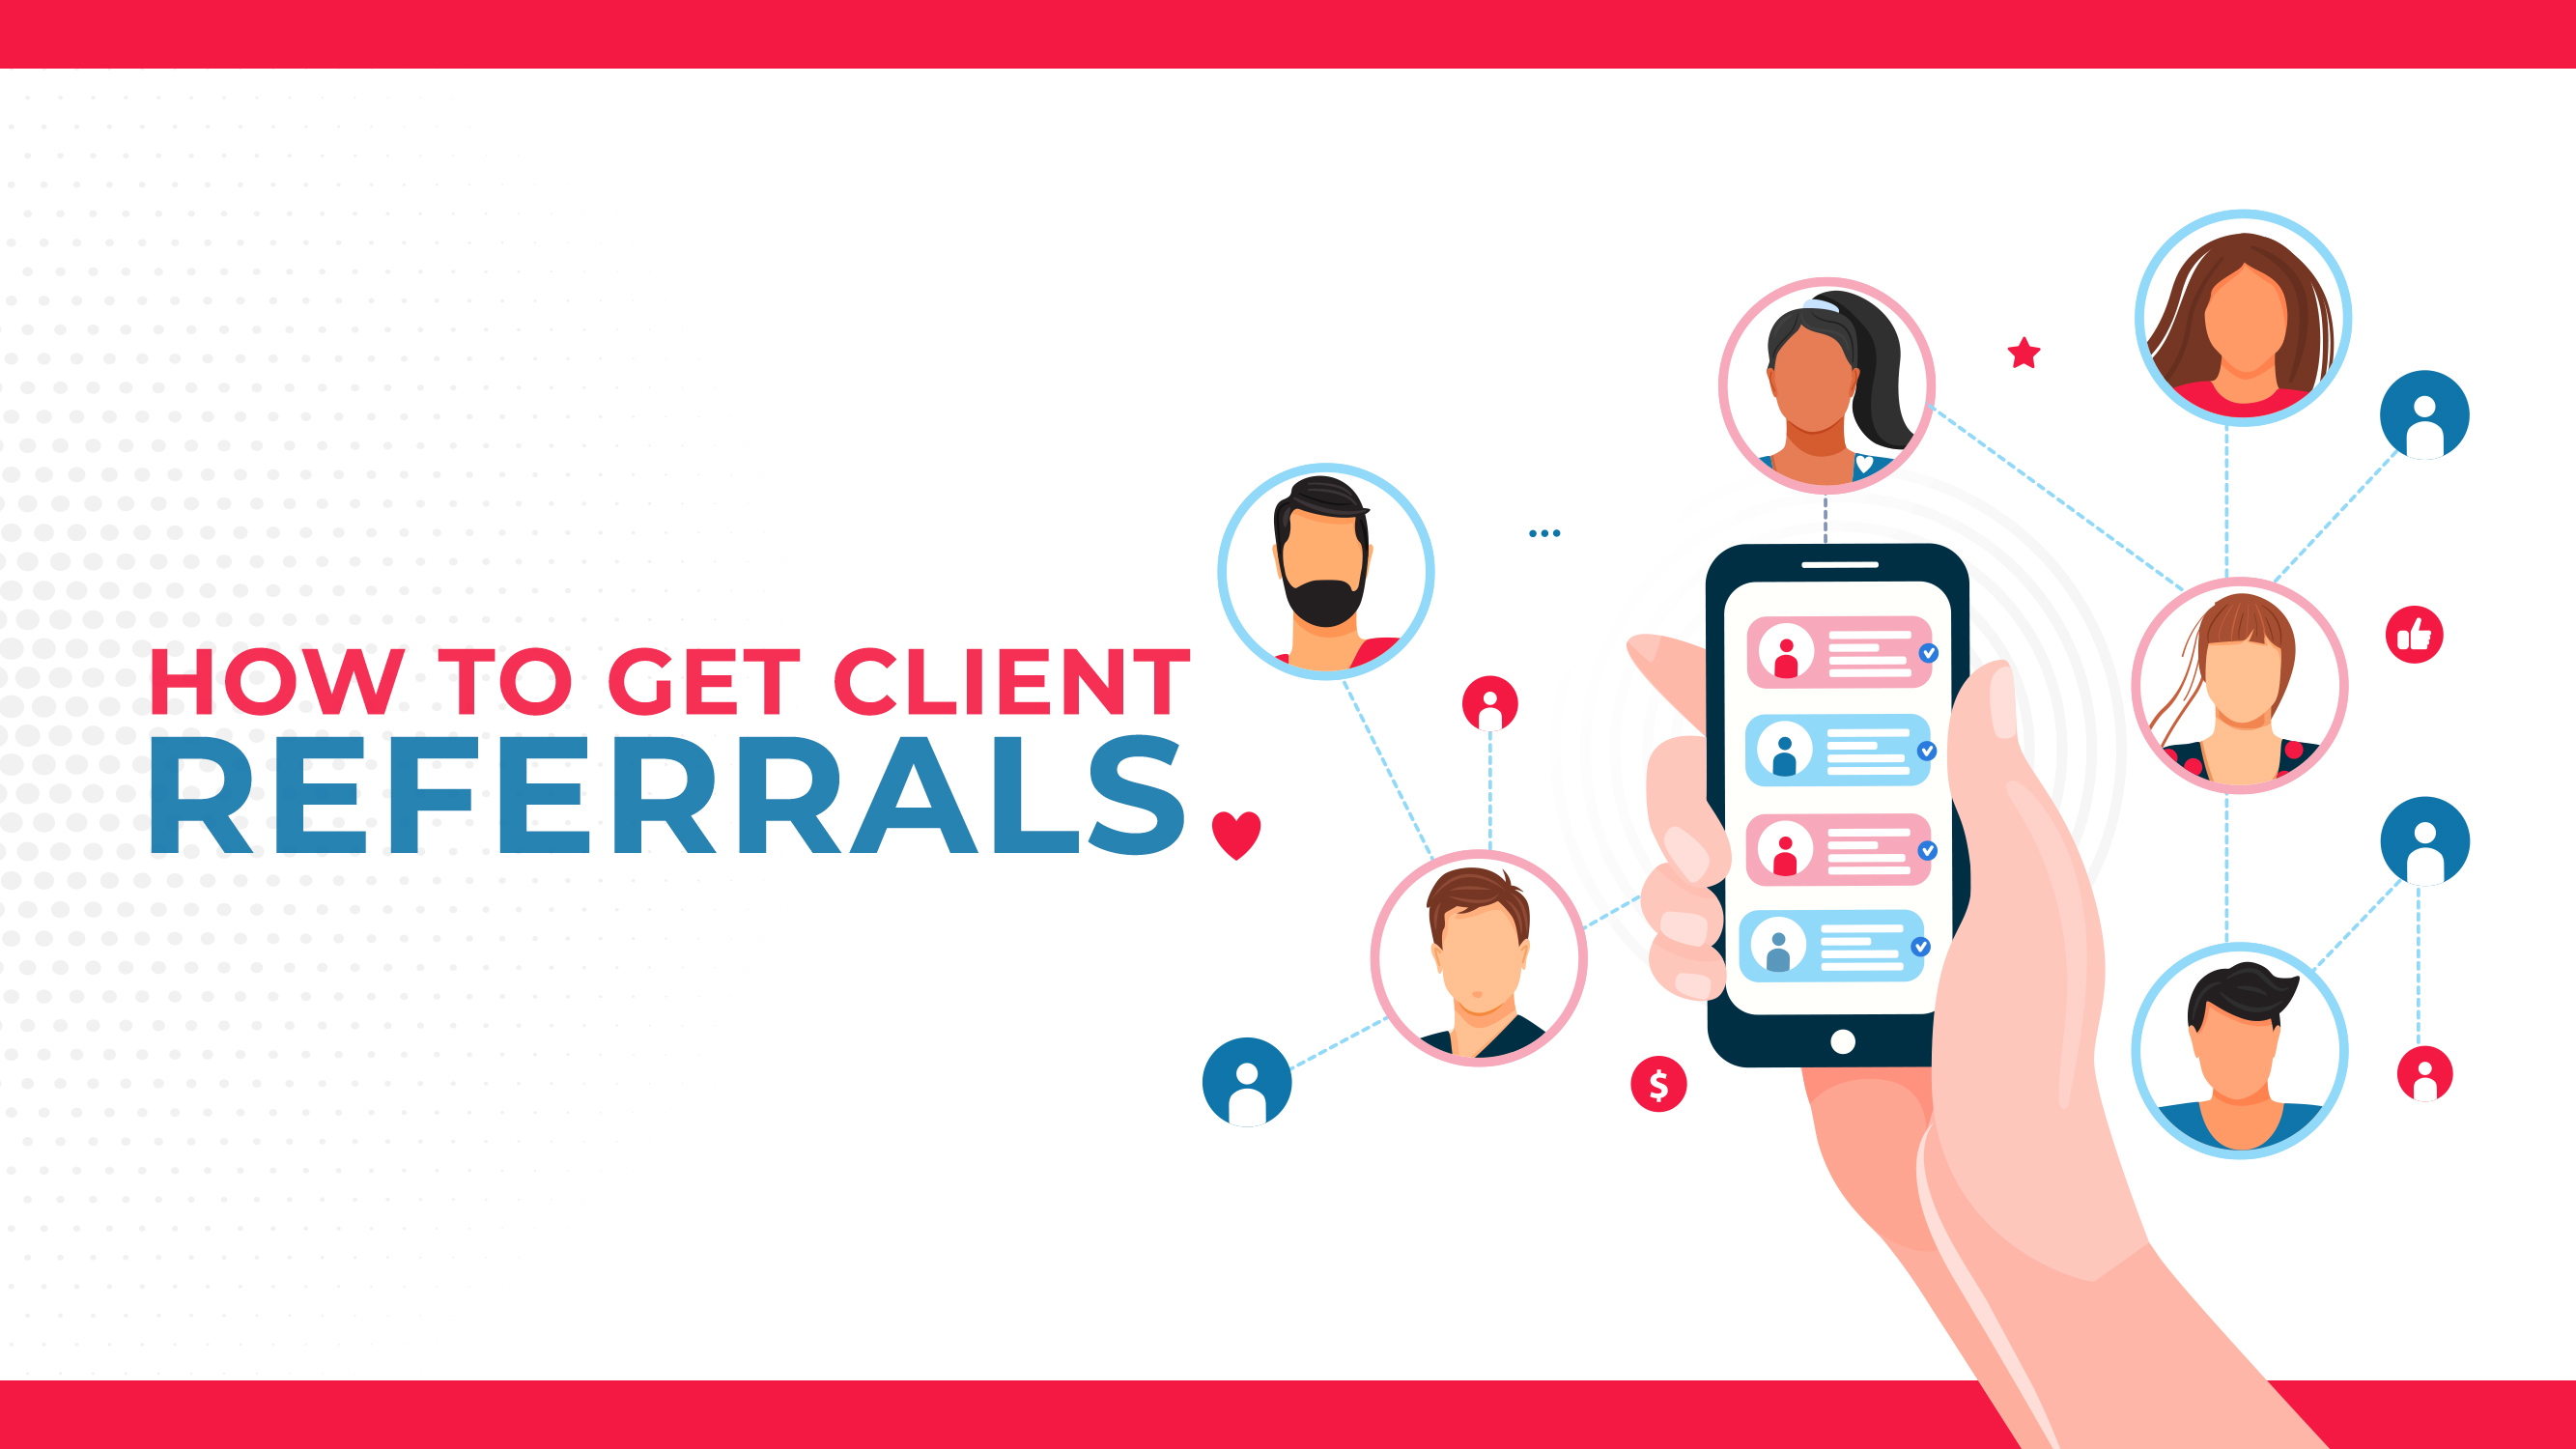 How To Get Client Referrals